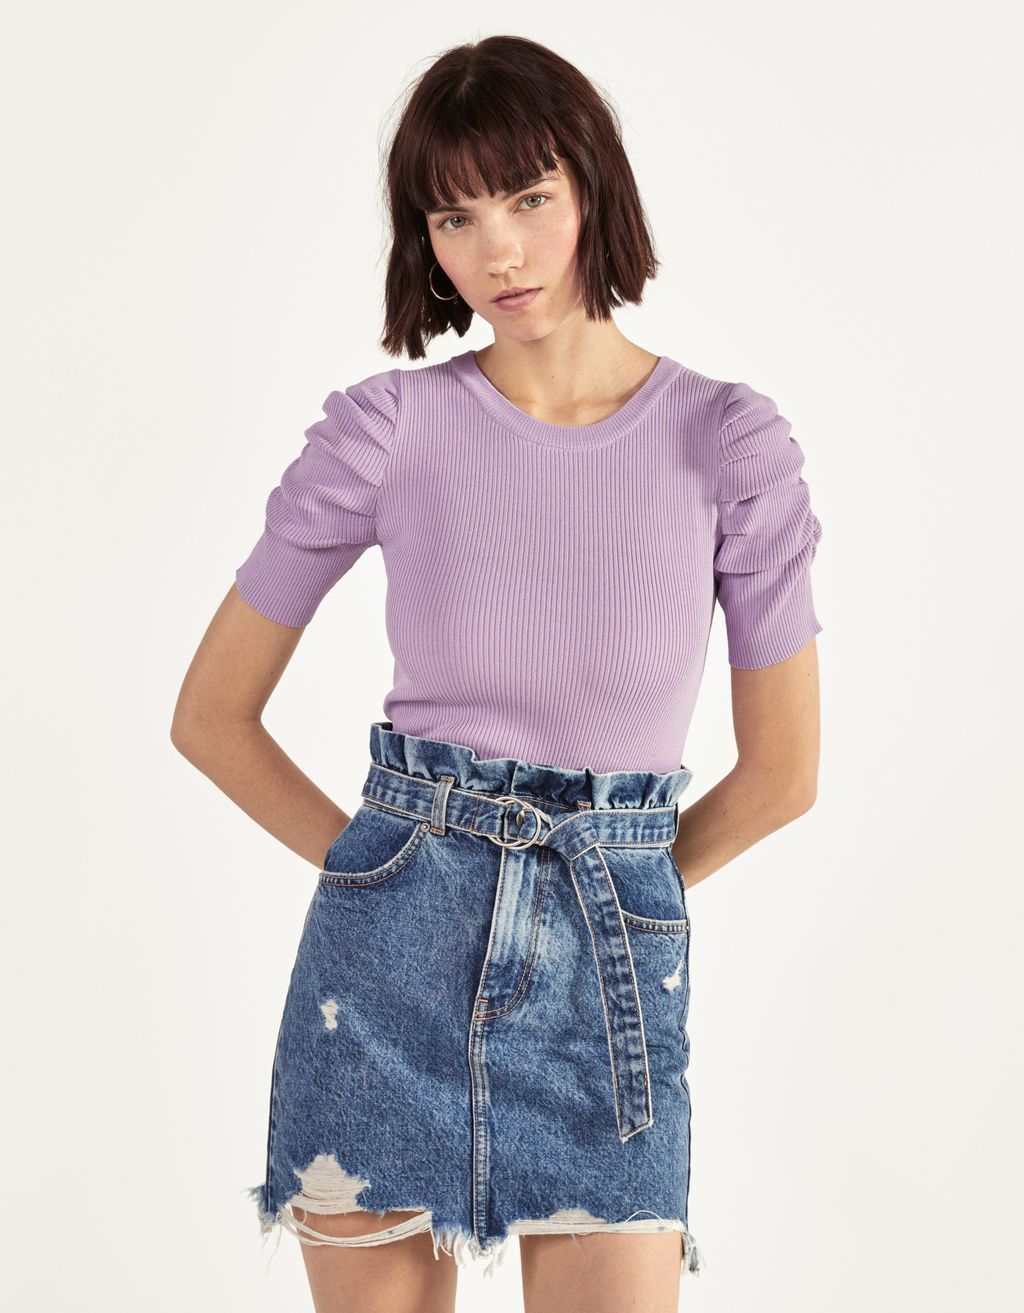 Denim skirt with belt